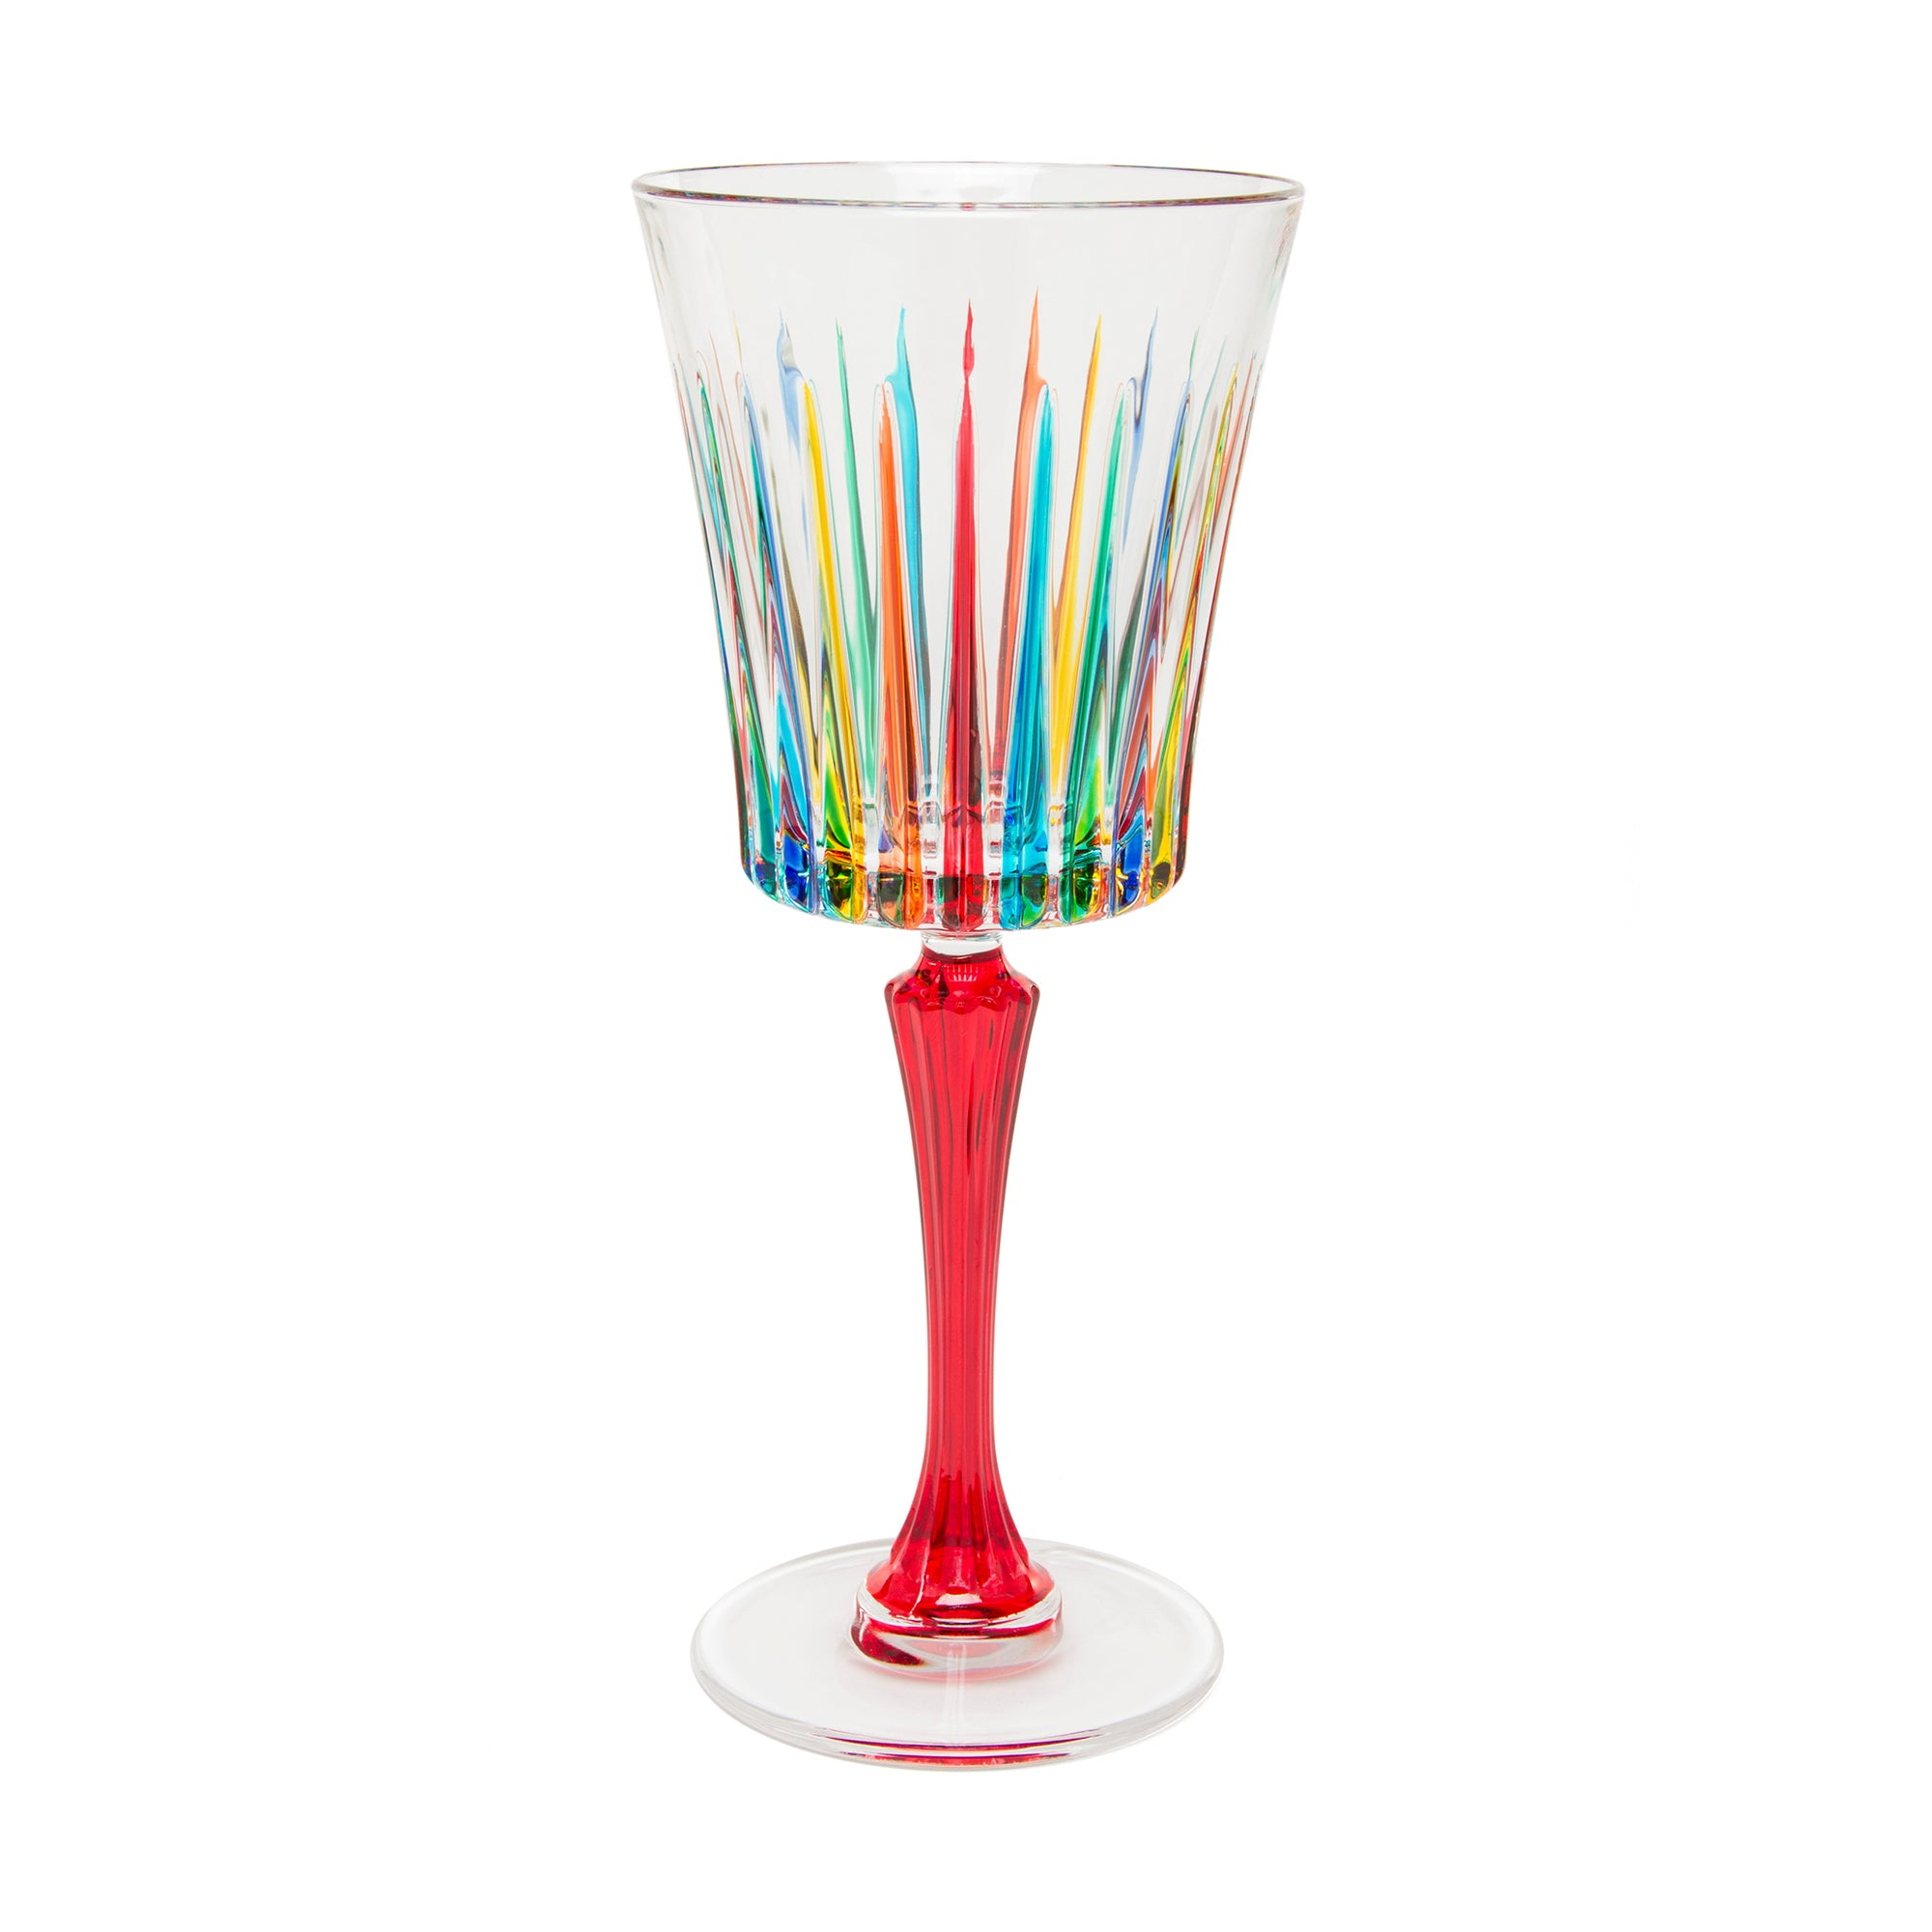 Murano Glass Wine Goblet- Blue Stem shown | Getty Store